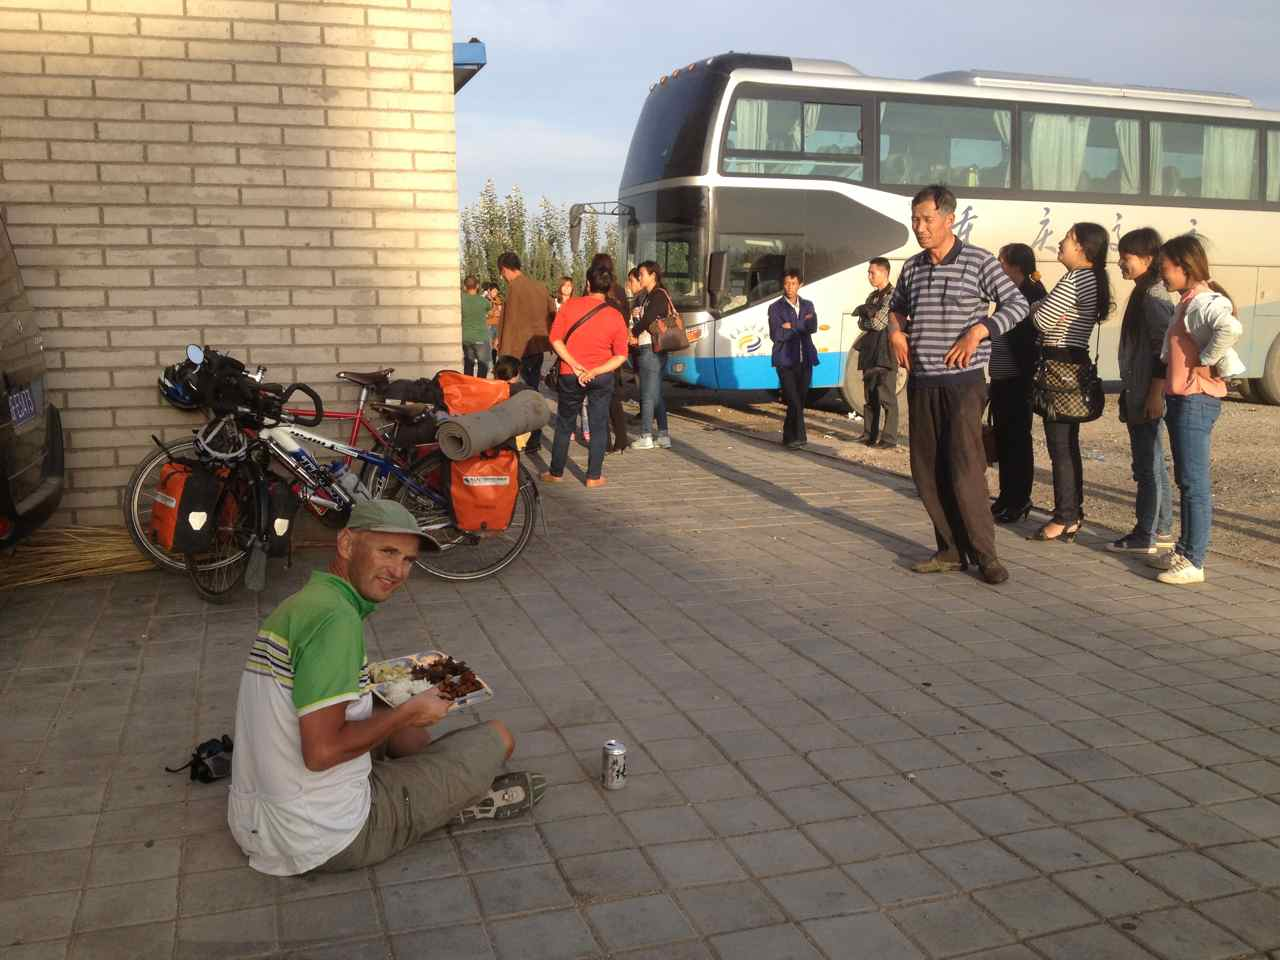 We couldn't watch our bikes from inside the restaurant so we had to eat outside to the amusement of the many  passengers of the buses that made dinner stops there. The can in front of me is not a beggars bowl, but my reward after fighting a long day against a strong headwind.